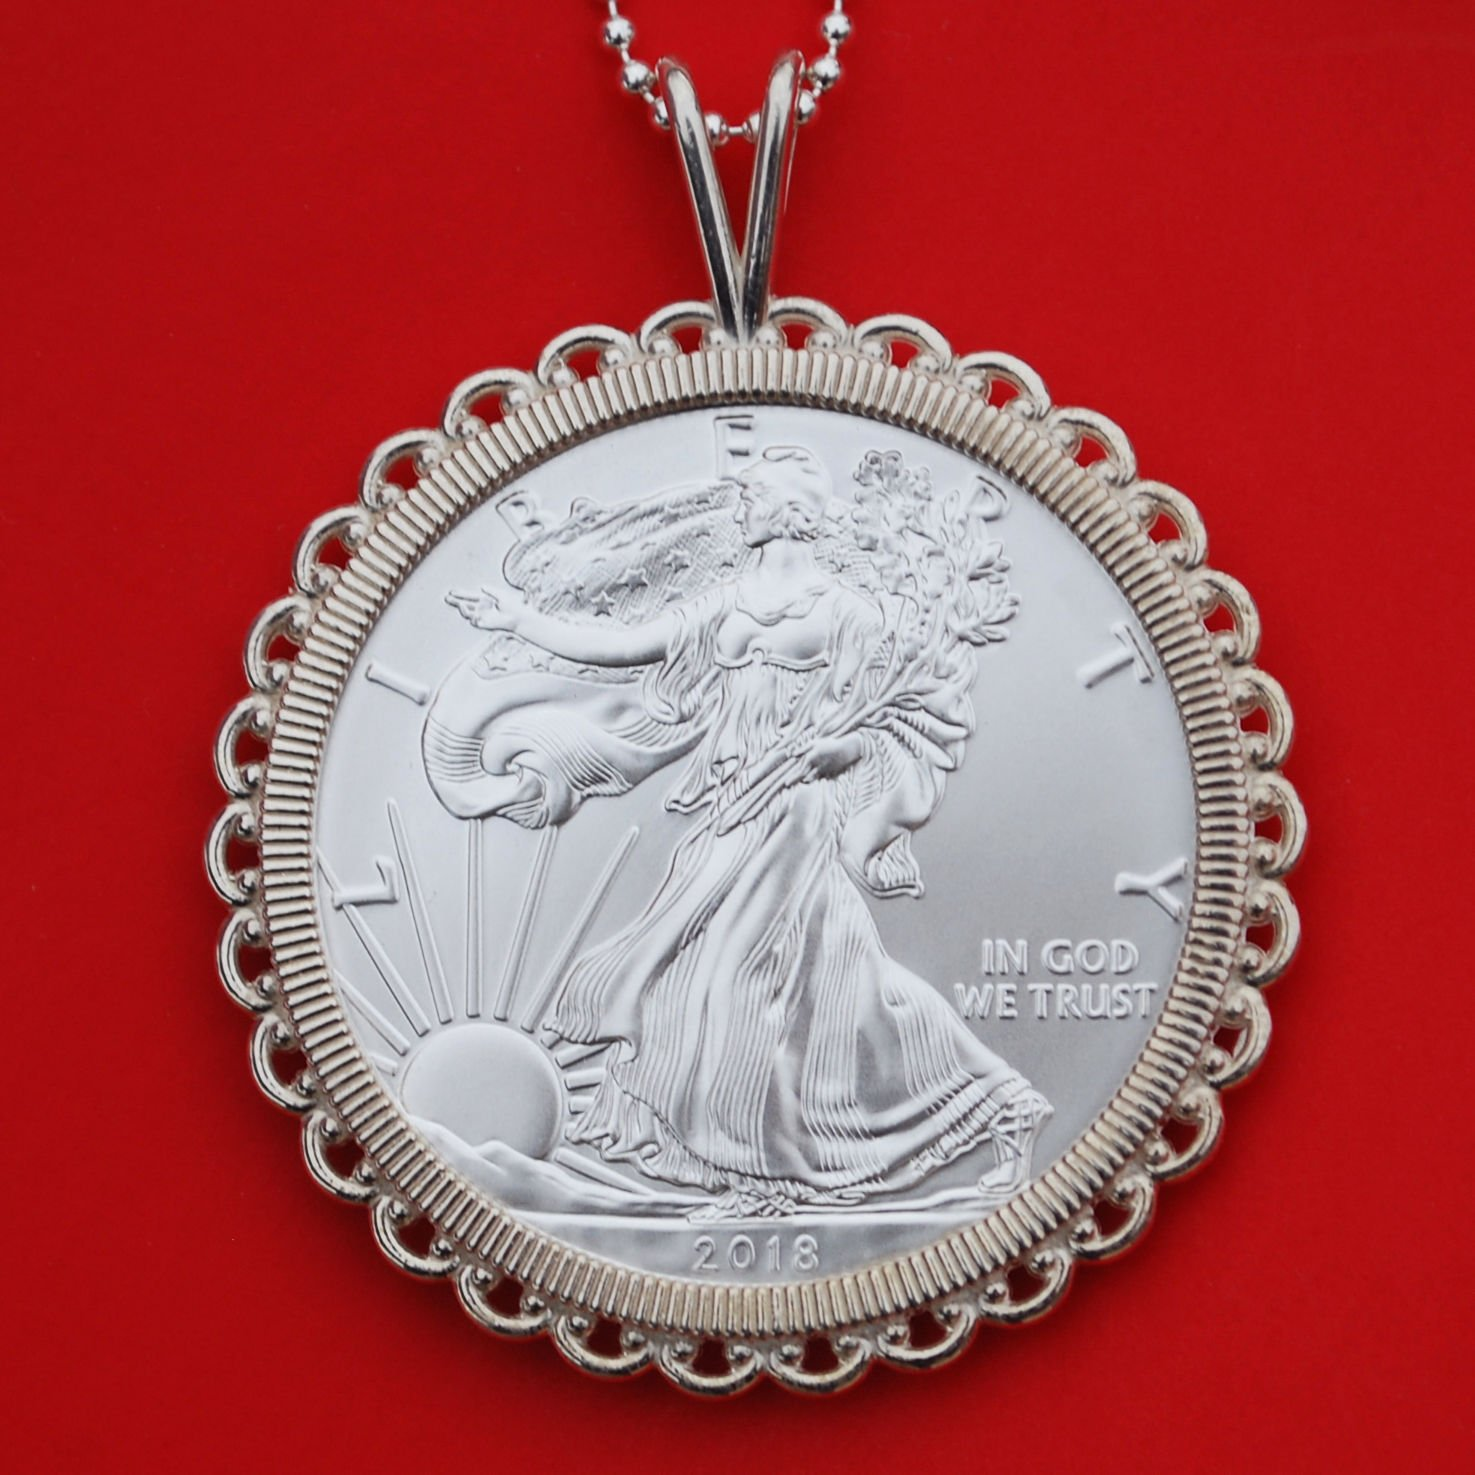 999 PURE STERLING SILVER 1 OZ AMERICAN EAGLE COIN CHARM PENDENT FREE SHIPPING